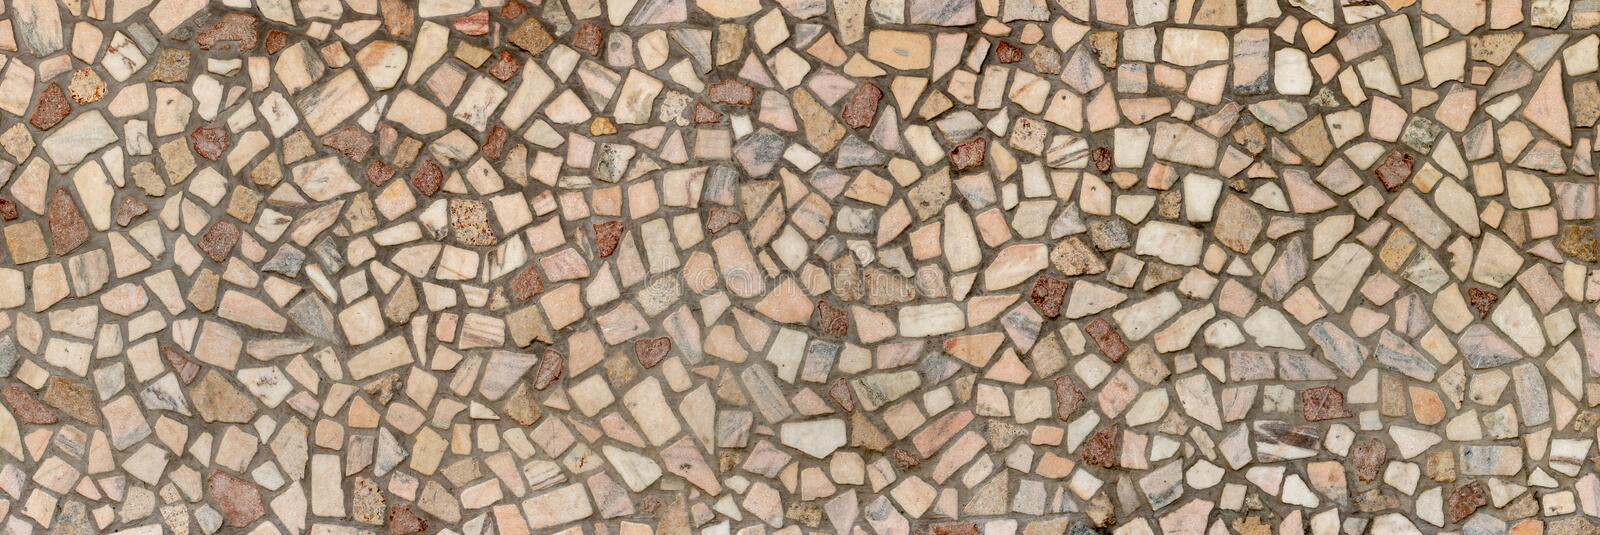 pieces of granite stone in concrete, texture, panorama royalty free stock photo